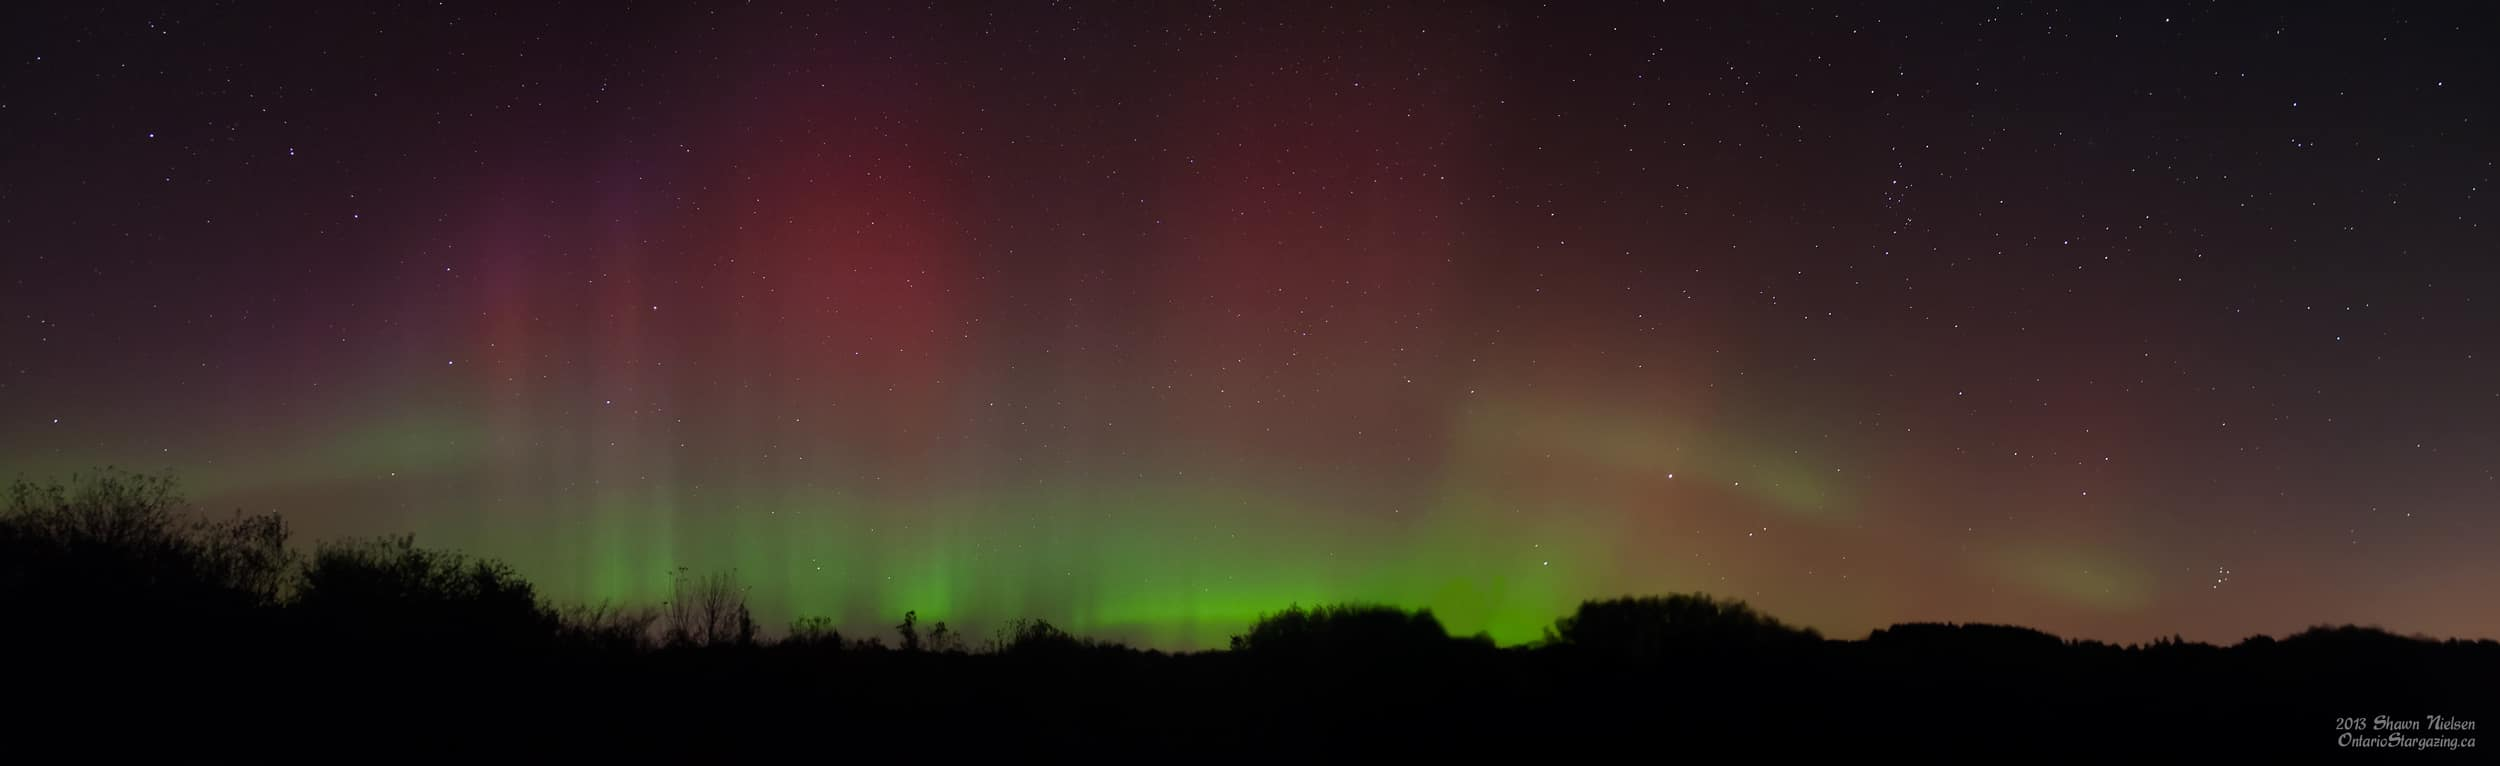 Panorama photo of the entire Northern Lights as seen October 8th, 2013.